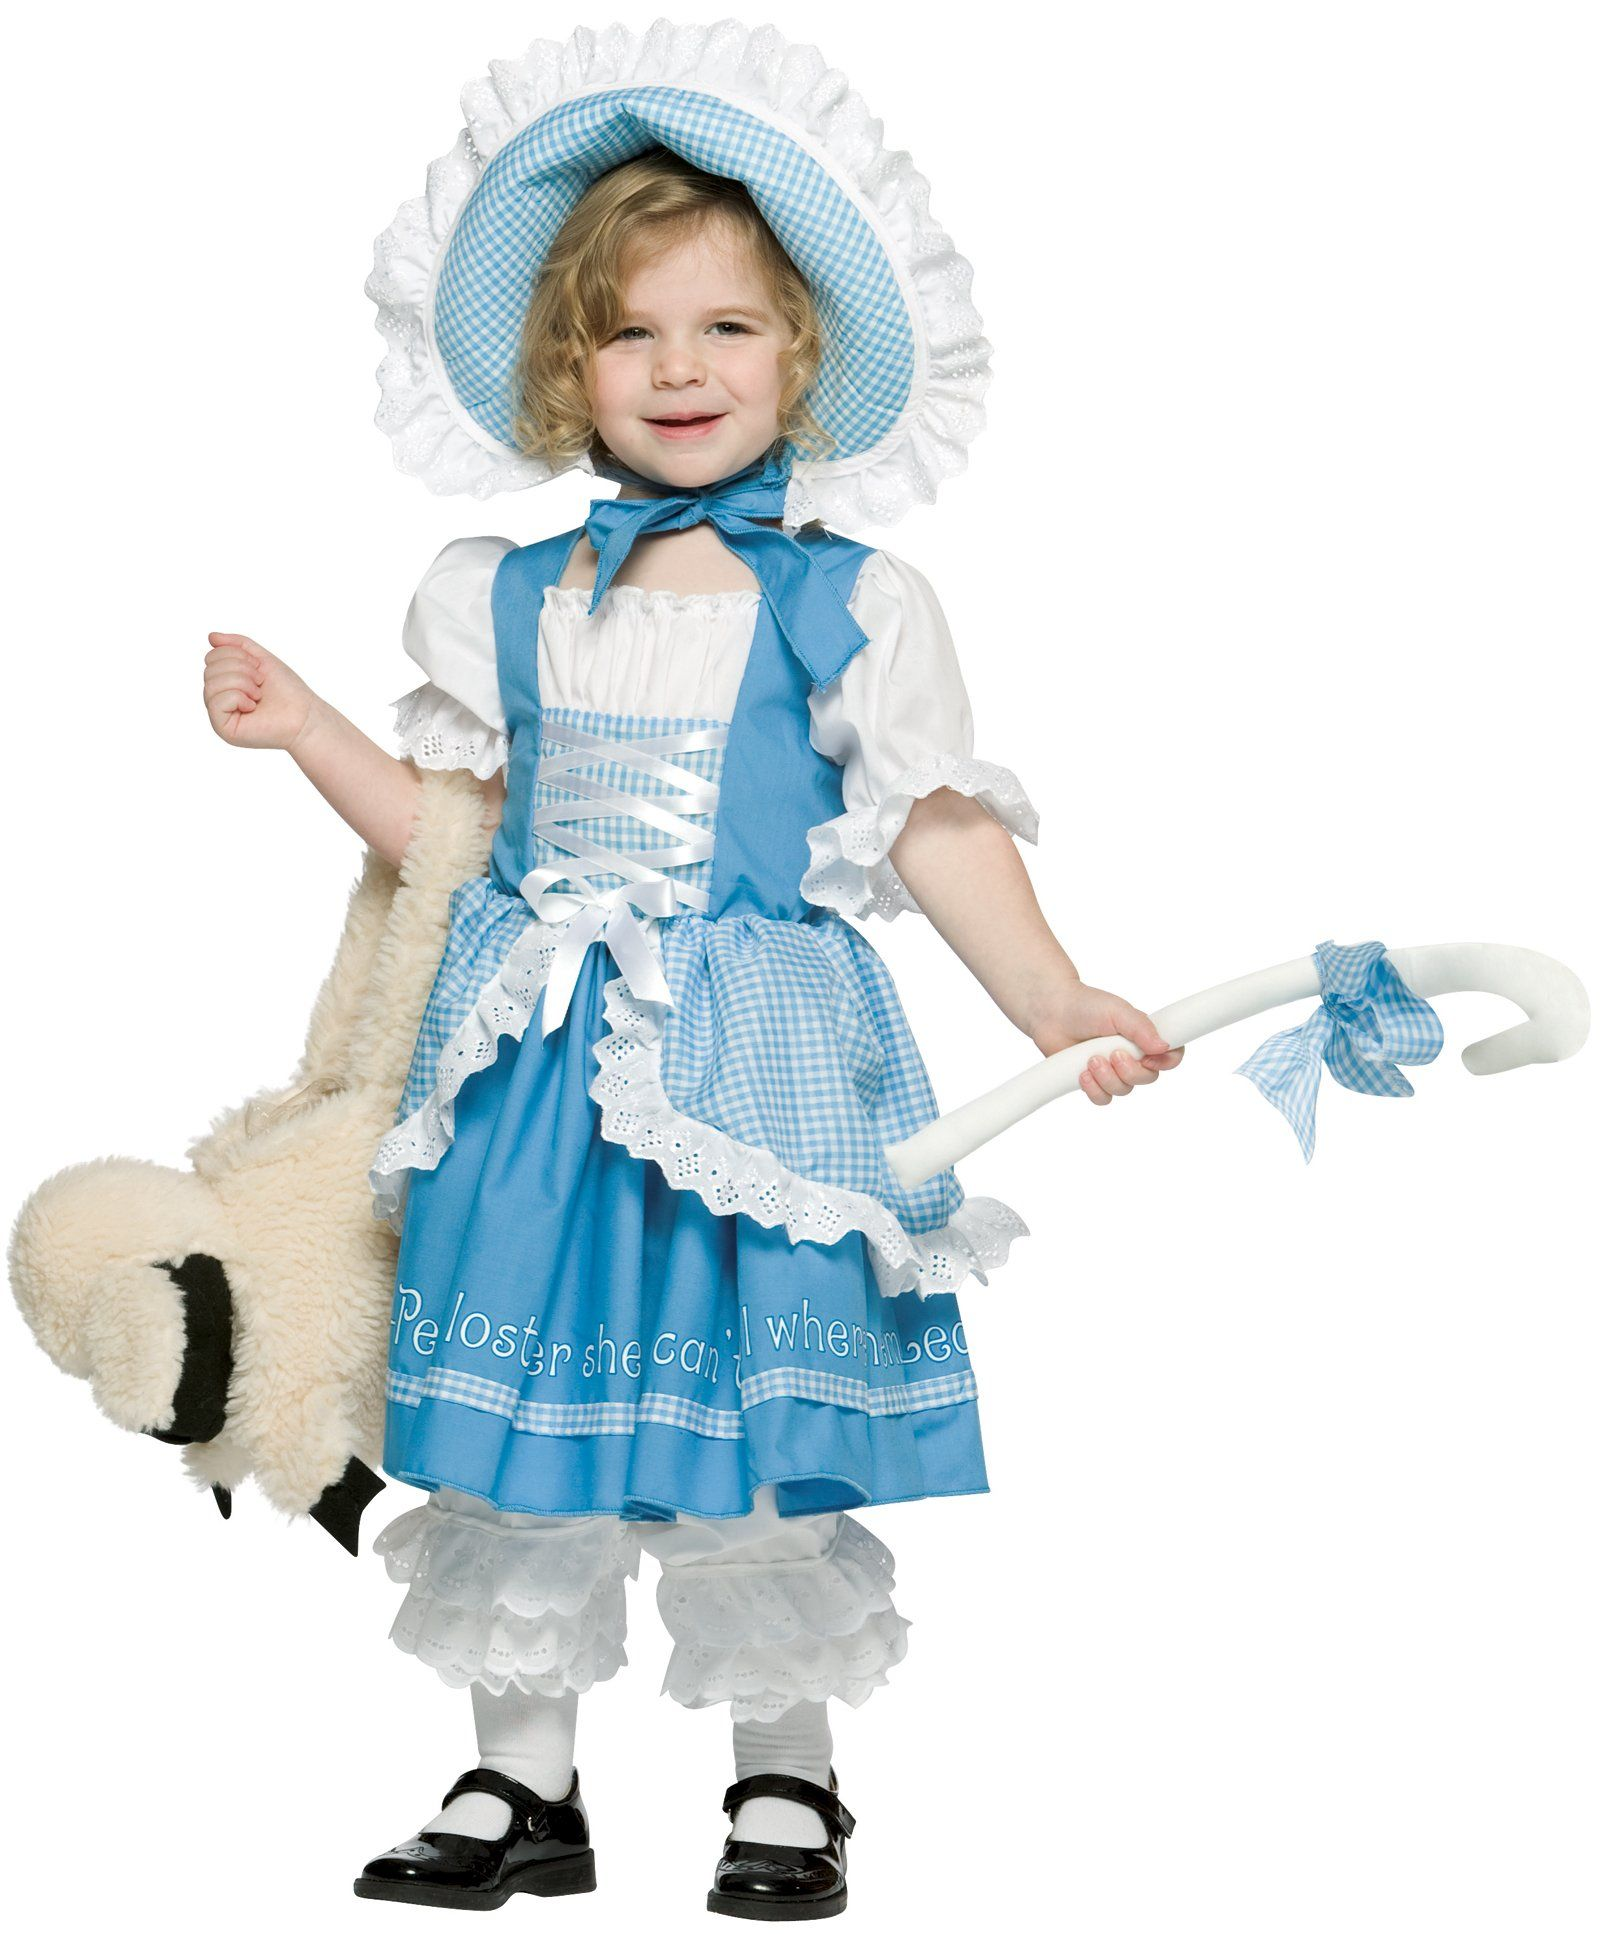 Kids Costumes For A Low Price